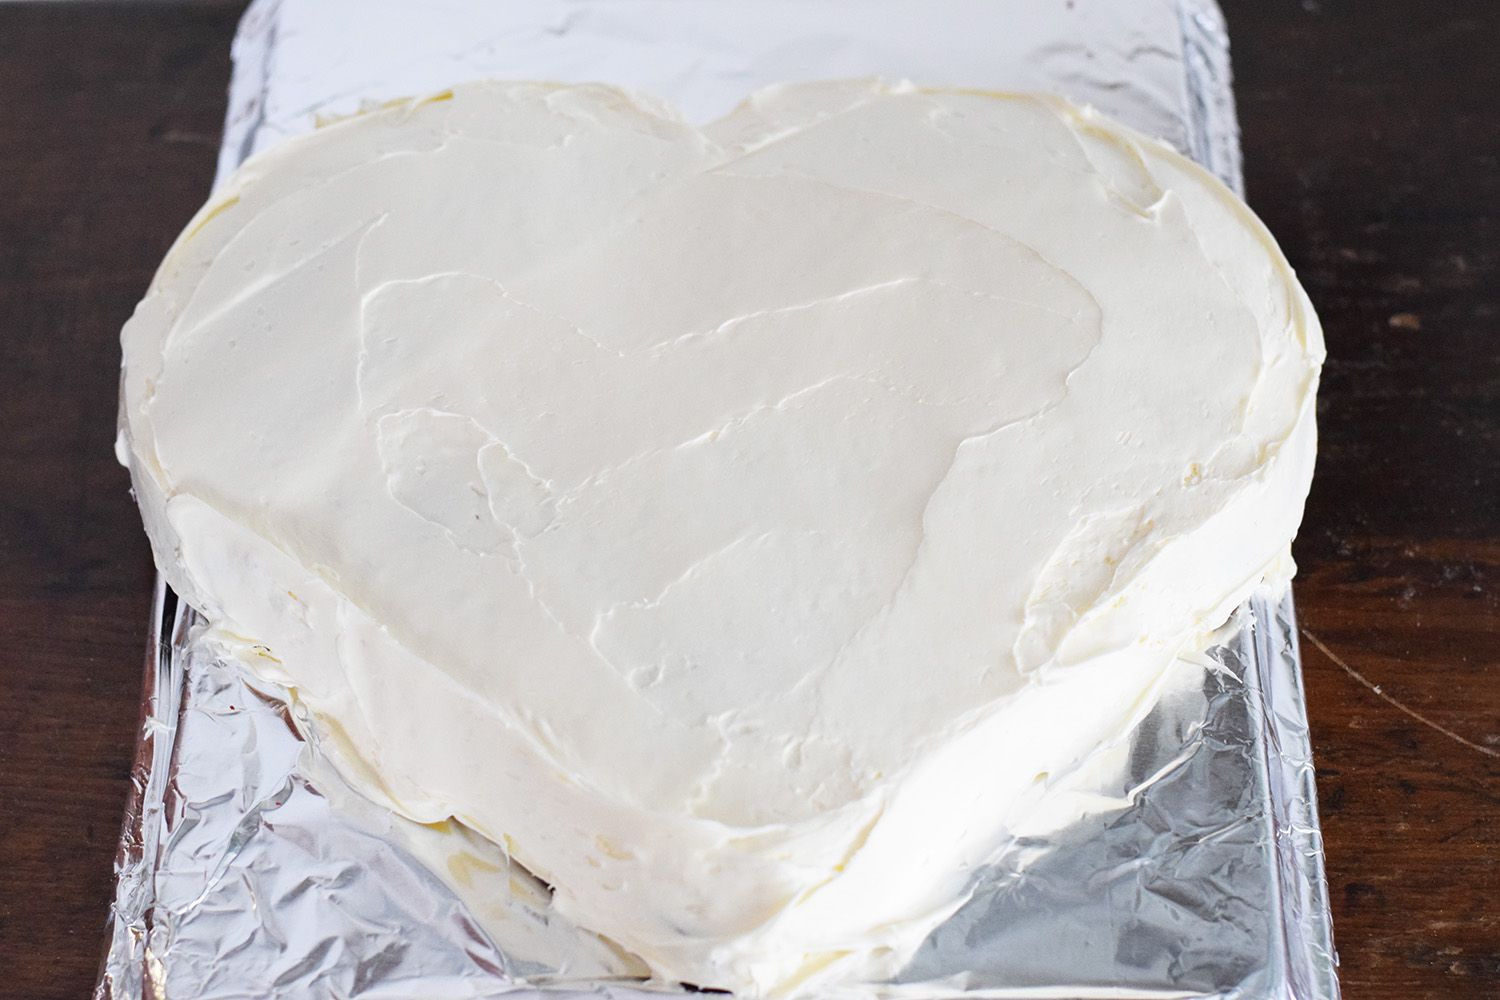 How to Make a Heart-Shaped Cake (With Step-By-Step Instructions)